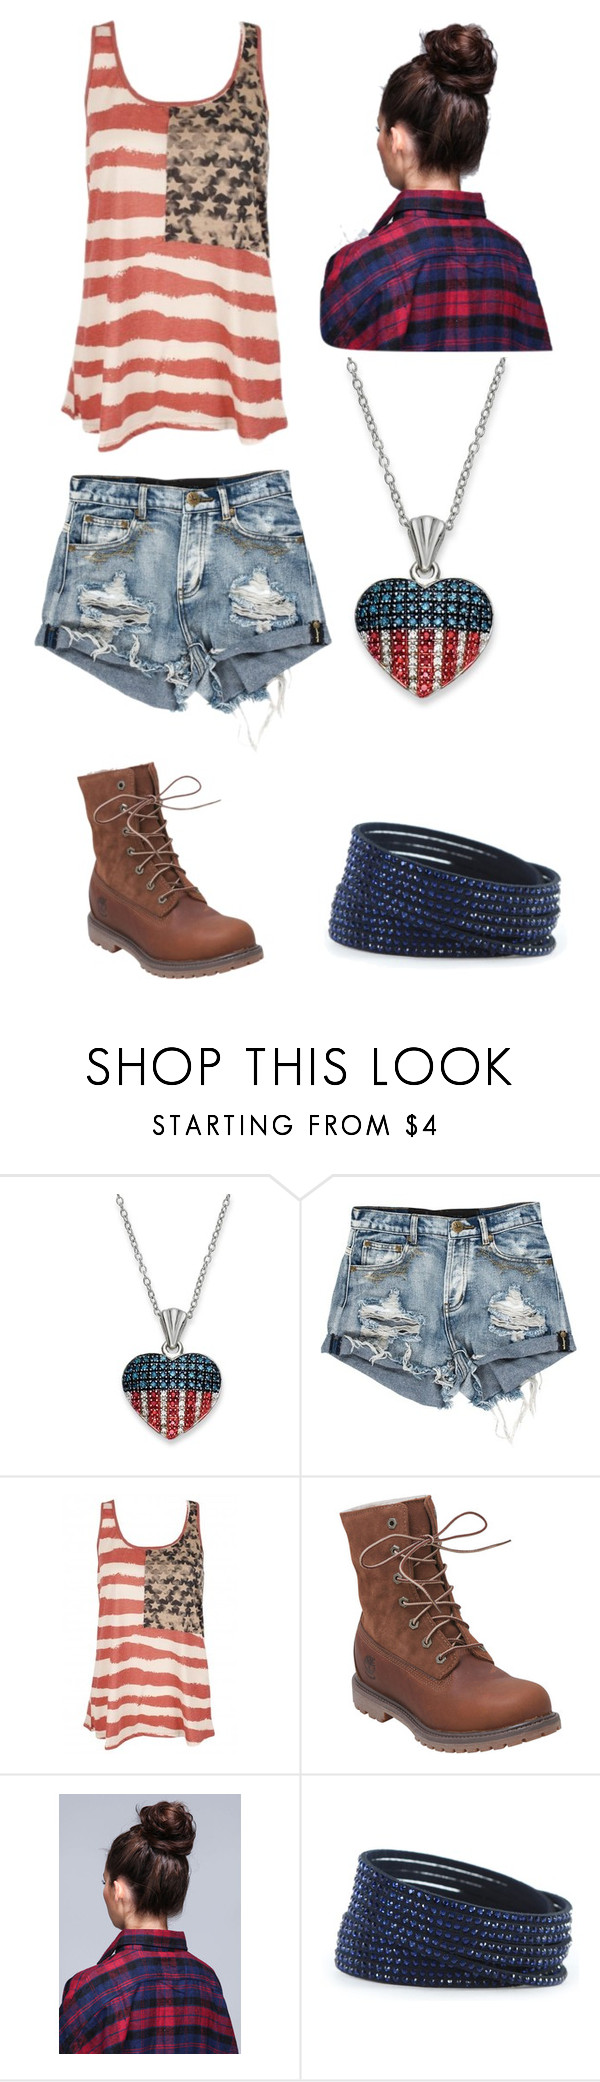 """""""Captain america inspired outfit"""" by carolyn-1999 ❤ liked on Polyvore featuring Timberland, Swarovski, tanktop, Avengers, CaptainAmerica and flag"""